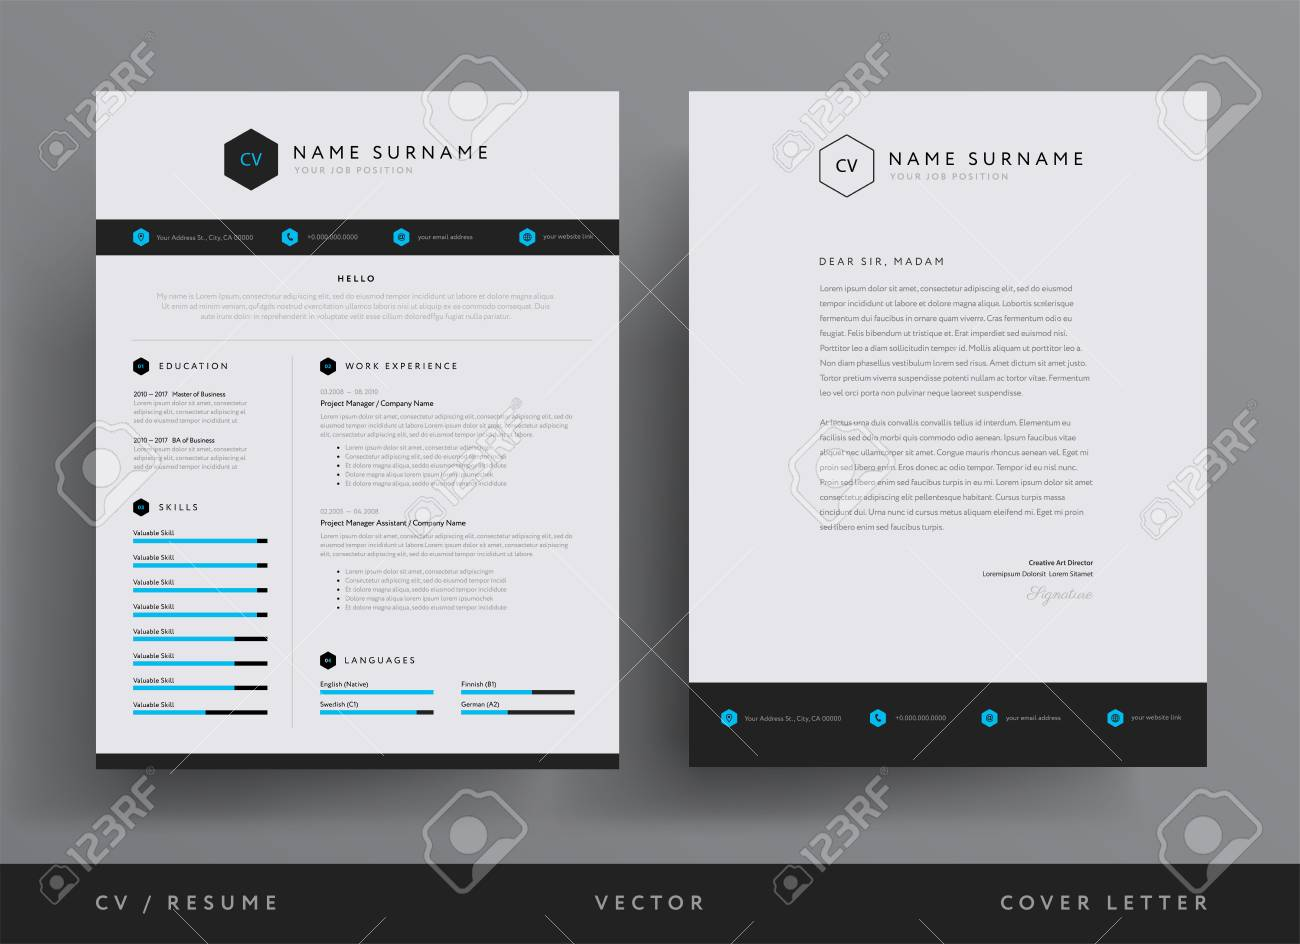 Professional Cv Resume Template Design And Letterhead Or Cover